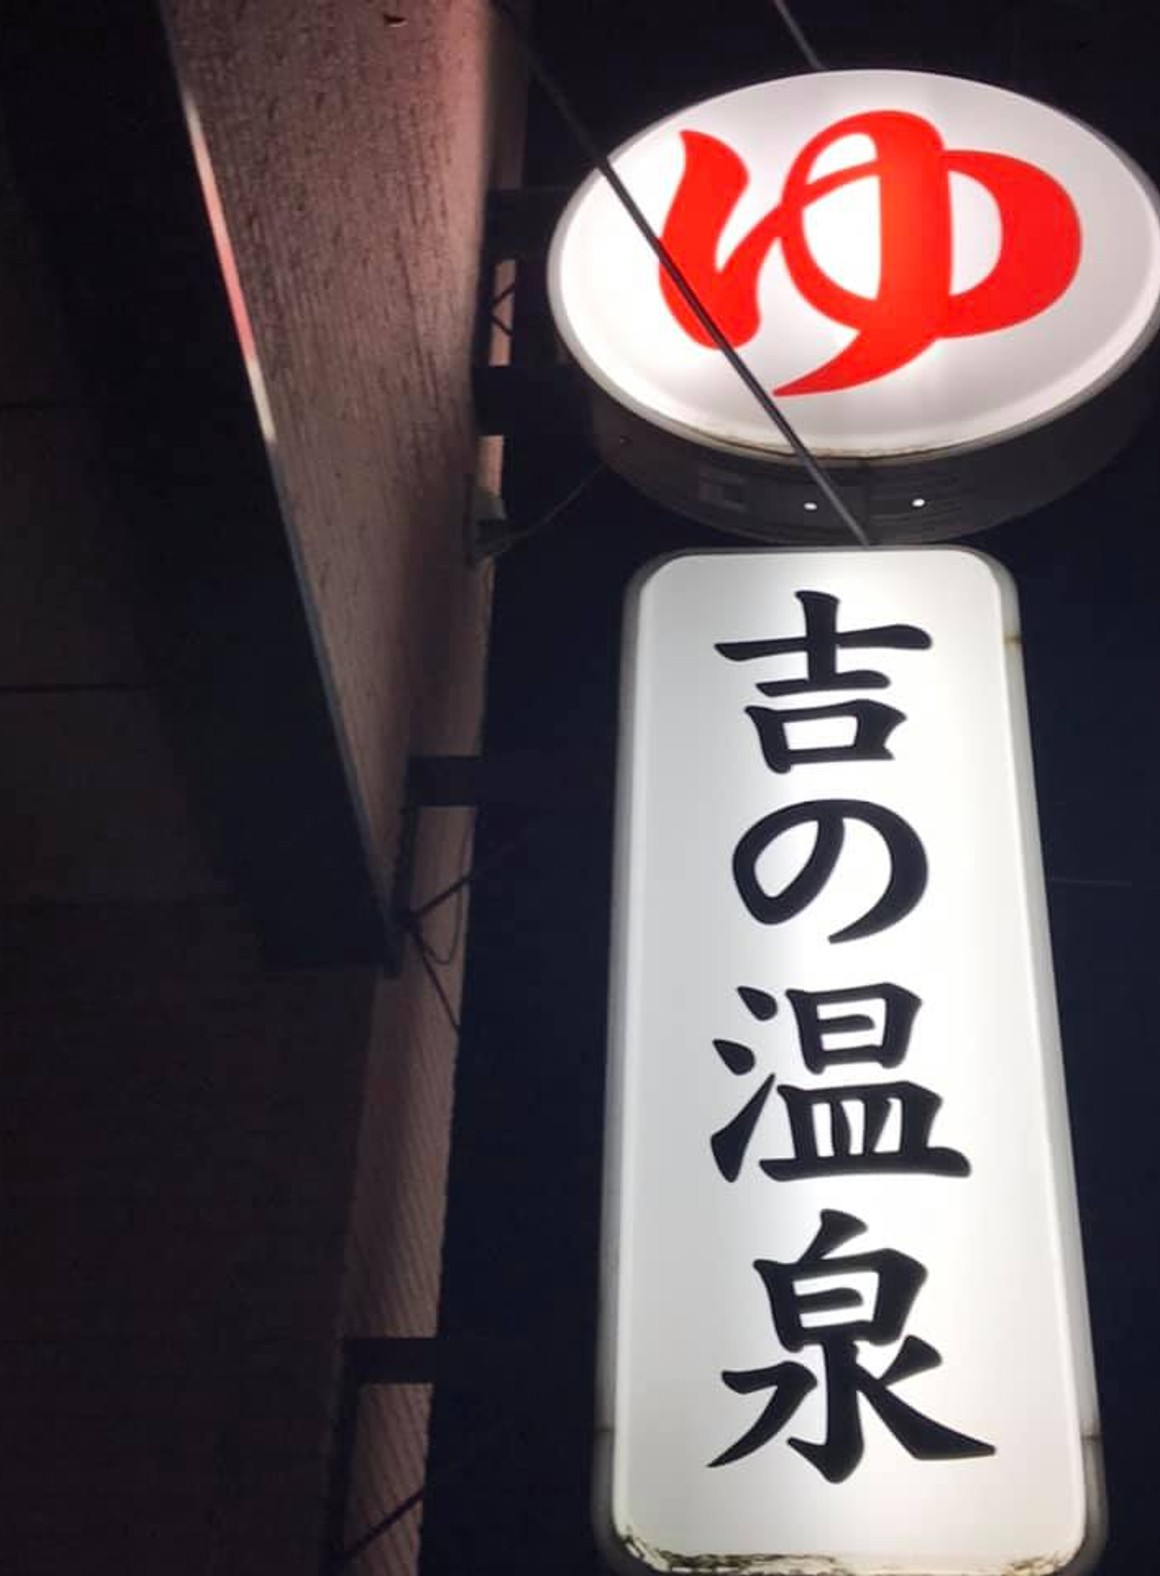 """""""Kichi no Onsen"""" where there are supporting characters from the Showa era in the public bath"""